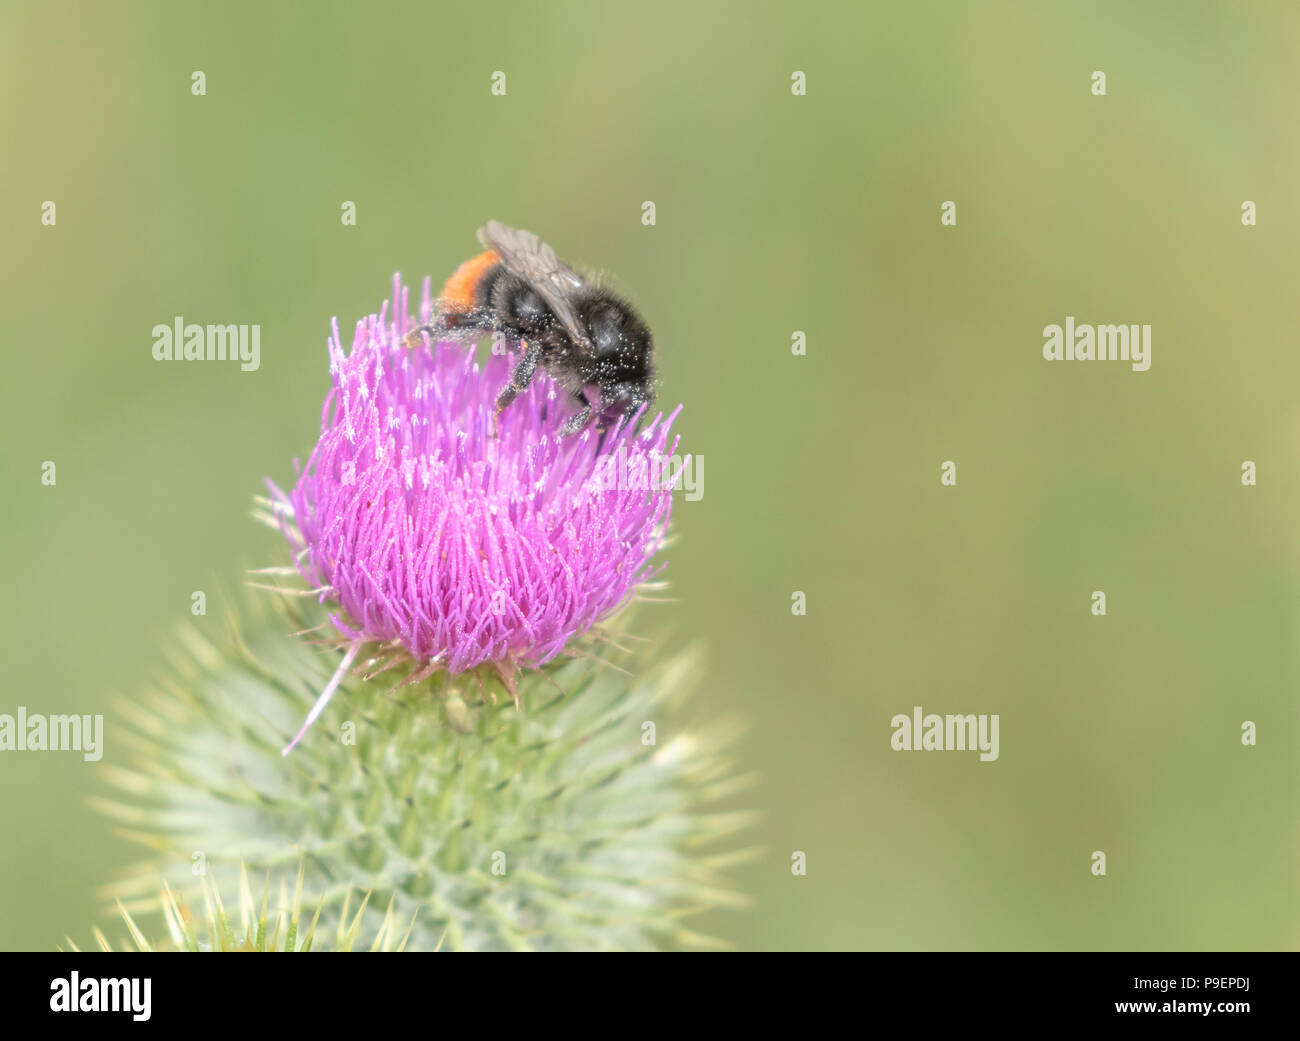 A Bombus Lapidarious bumble bee, covered in pollen, on a thistle flower. - Stock Image